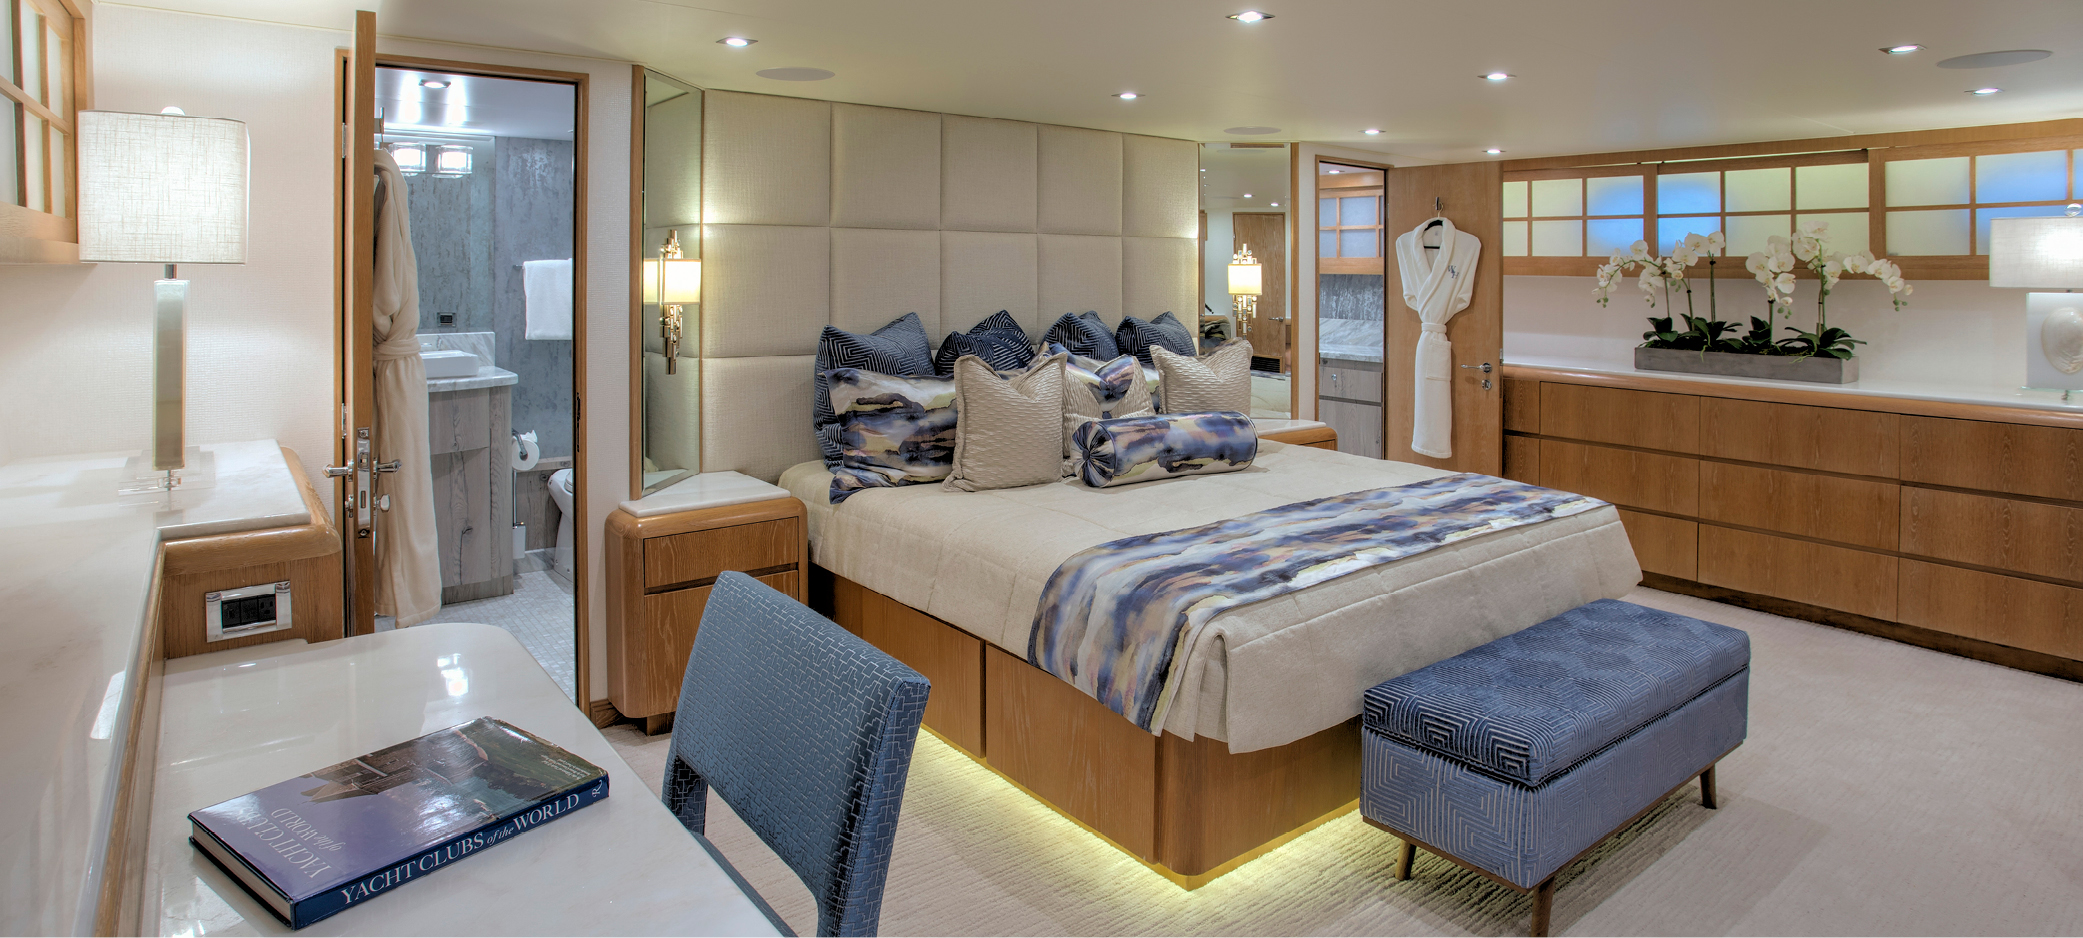 Yacht makeover and refit featuring master cabin design with bed base created with a hydraulic lift to provide convenient access to huge hidden storage underneath. Shoji screens at the windows also have hidden storage behind them, practical for soft luggage and duvets.